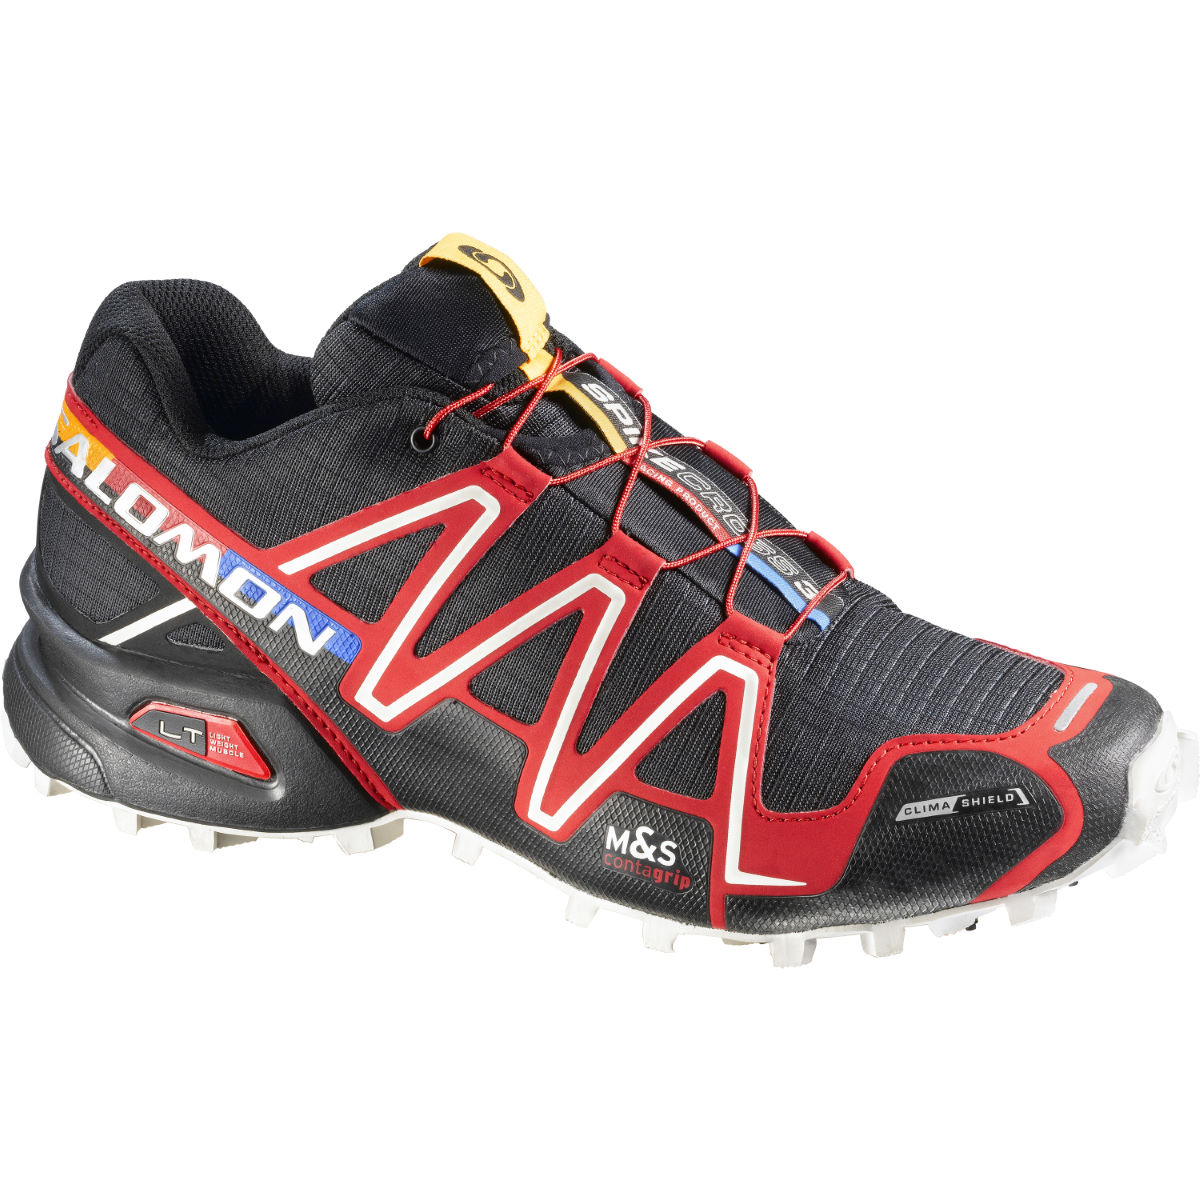 Salomon Spikecross 3 CS Shoes - SS15